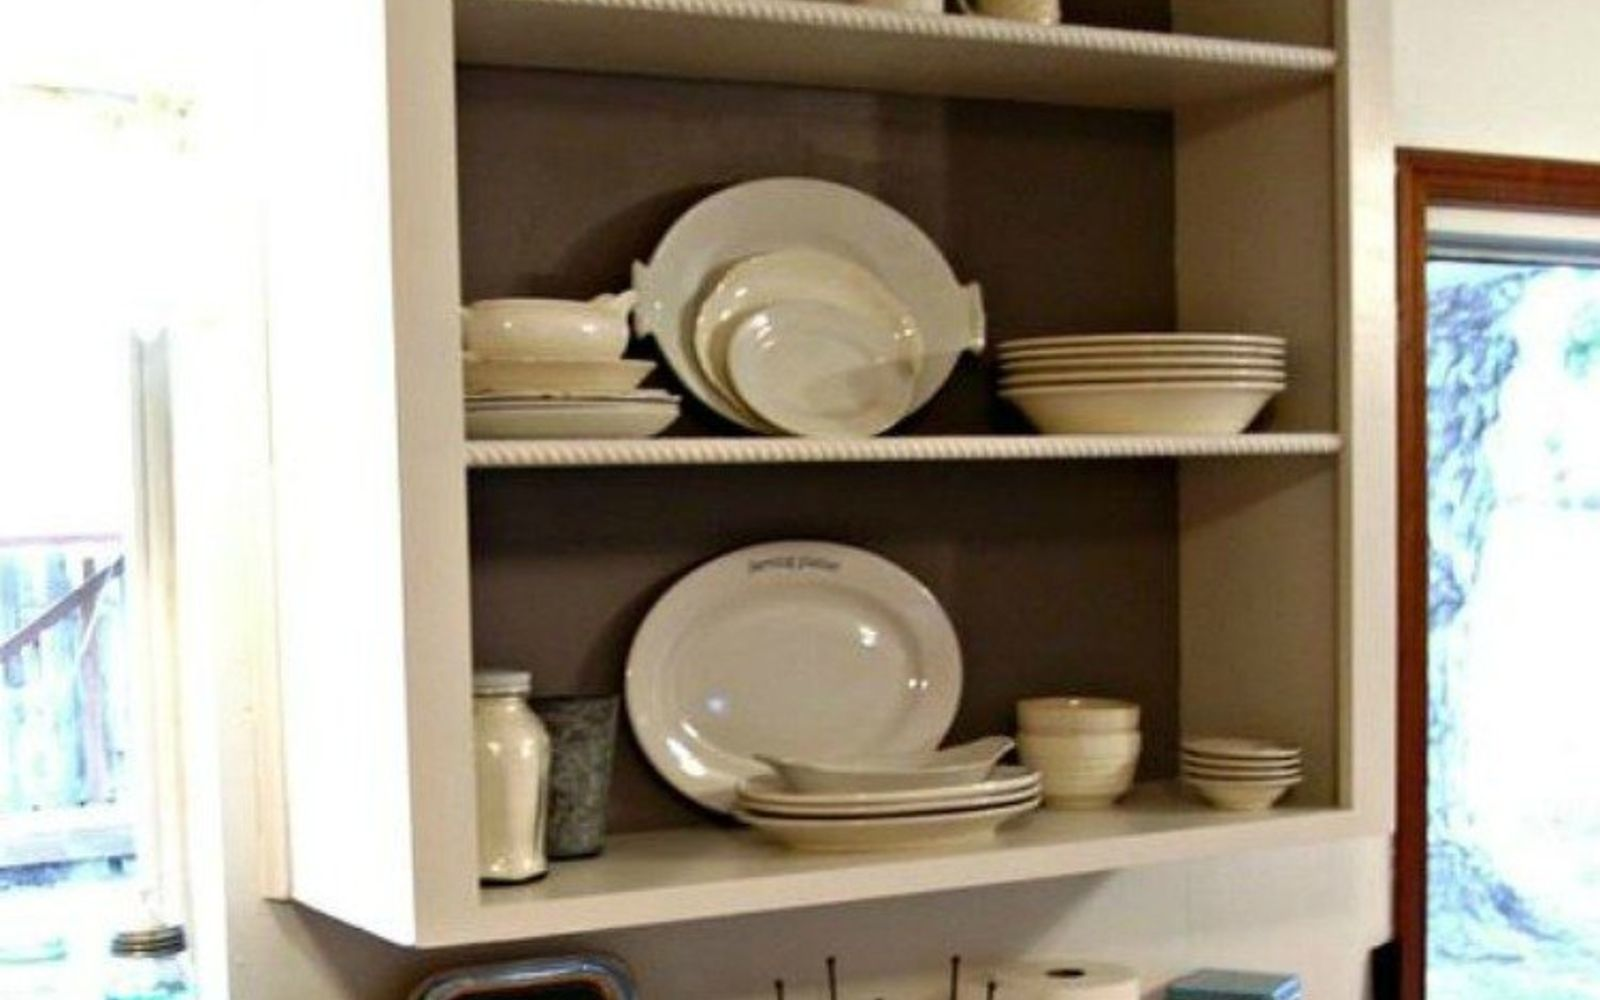 s 15 clever ways to add more kitchen storage space with open shelves, kitchen design, shelving ideas, storage ideas, Display your serving dishes within reach